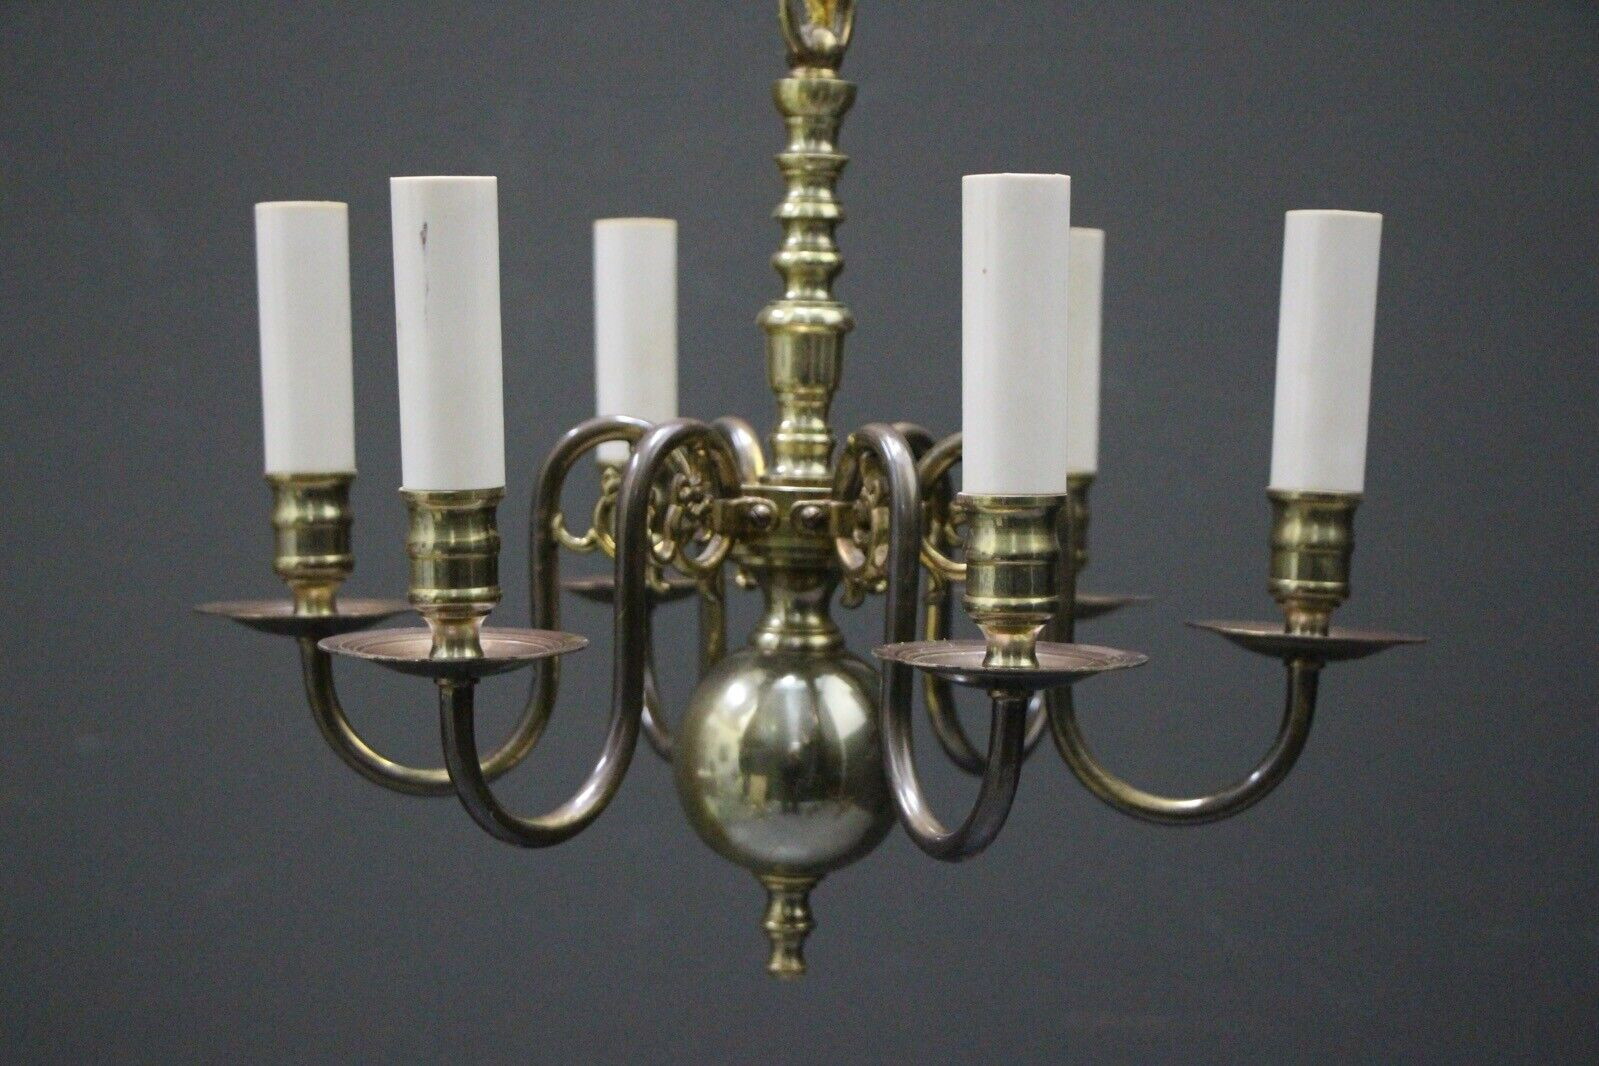 Antique Dutch or French Provincial 6 arm chandelier with dragon scroll arms 1935 11